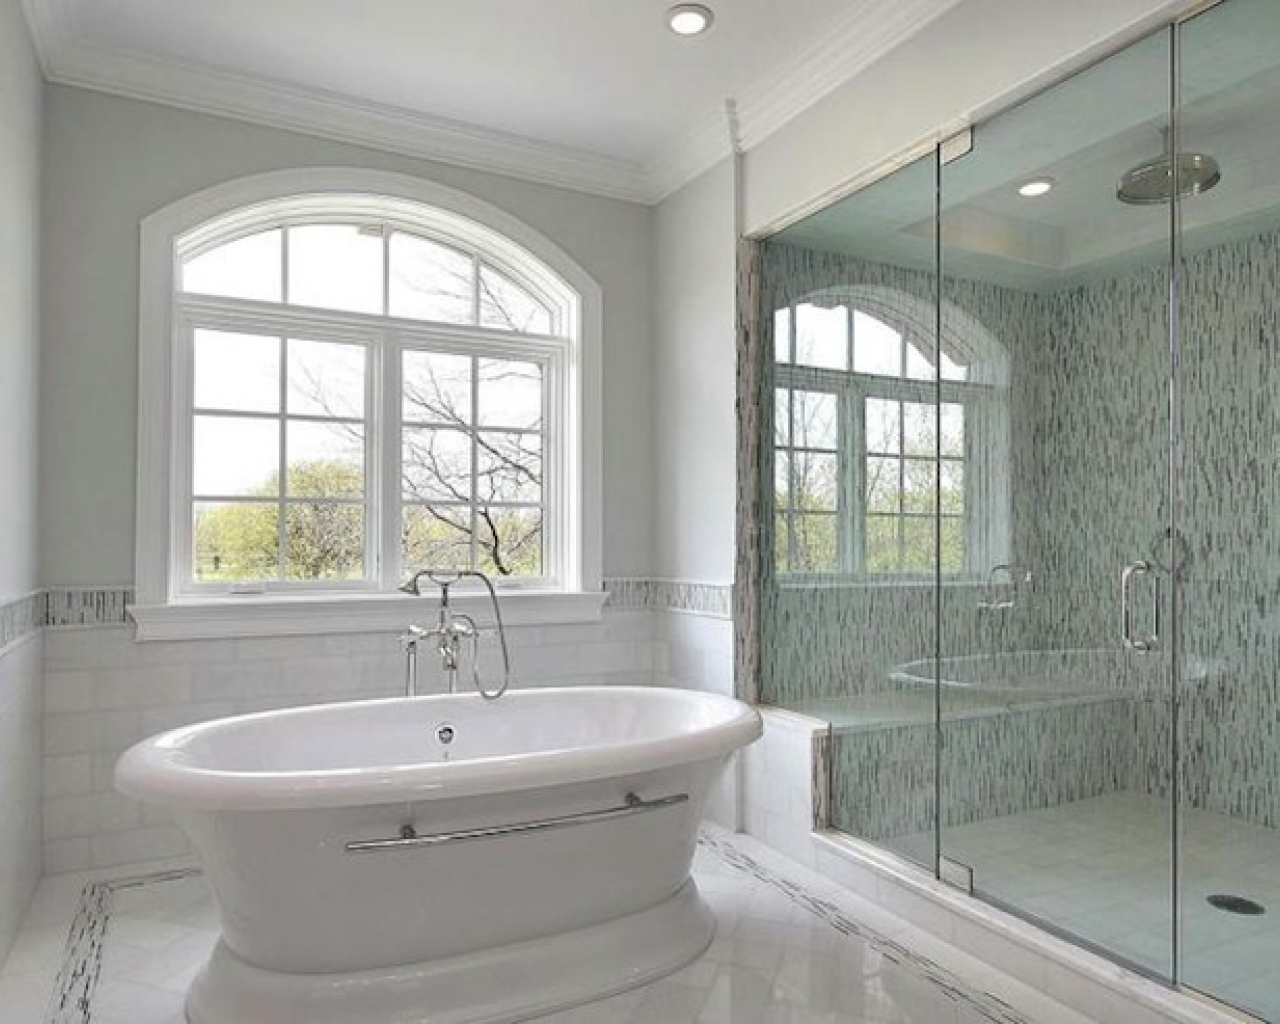 27 nice pictures of bathroom glass tile accent ideas for Designs of bathroom tiles